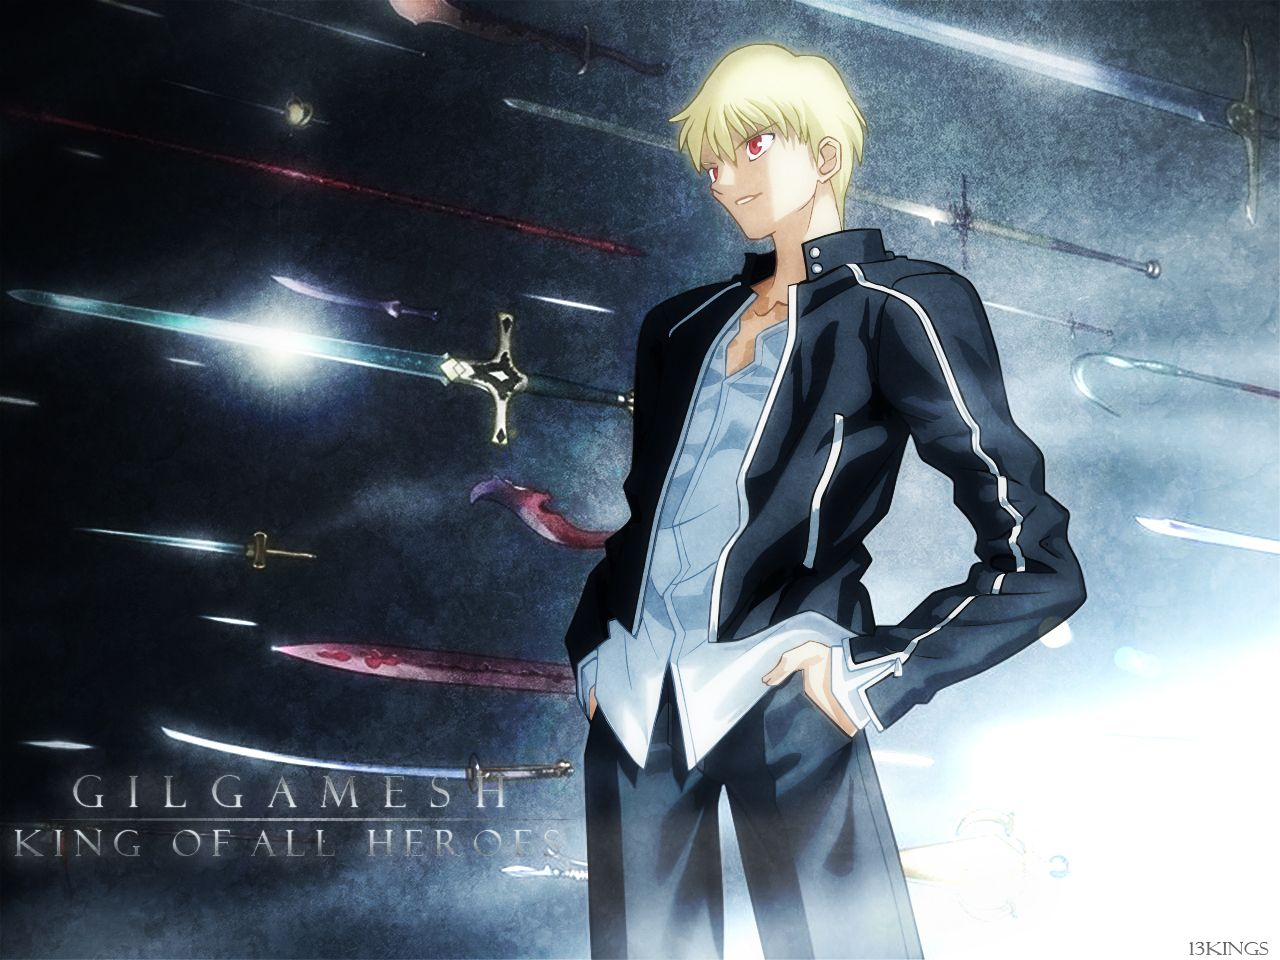 Type Moon Studio Deen Fatestay Night Gilgamesh Fate